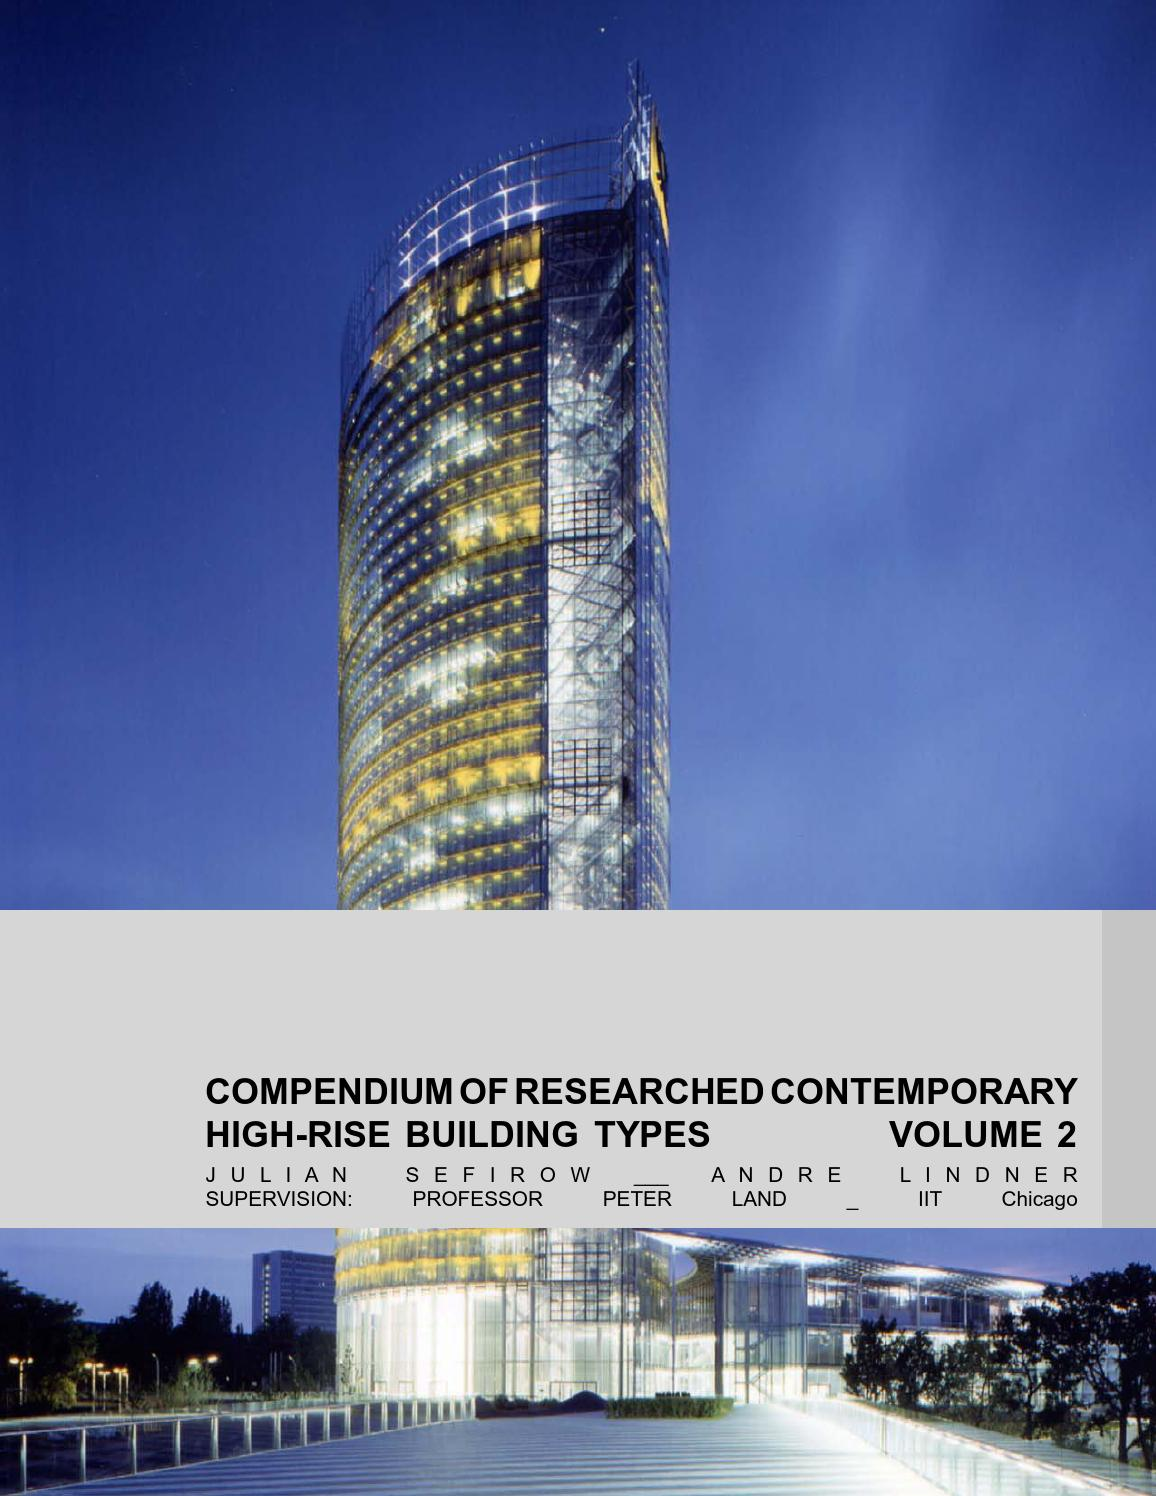 Compendium of researched high rise buildings